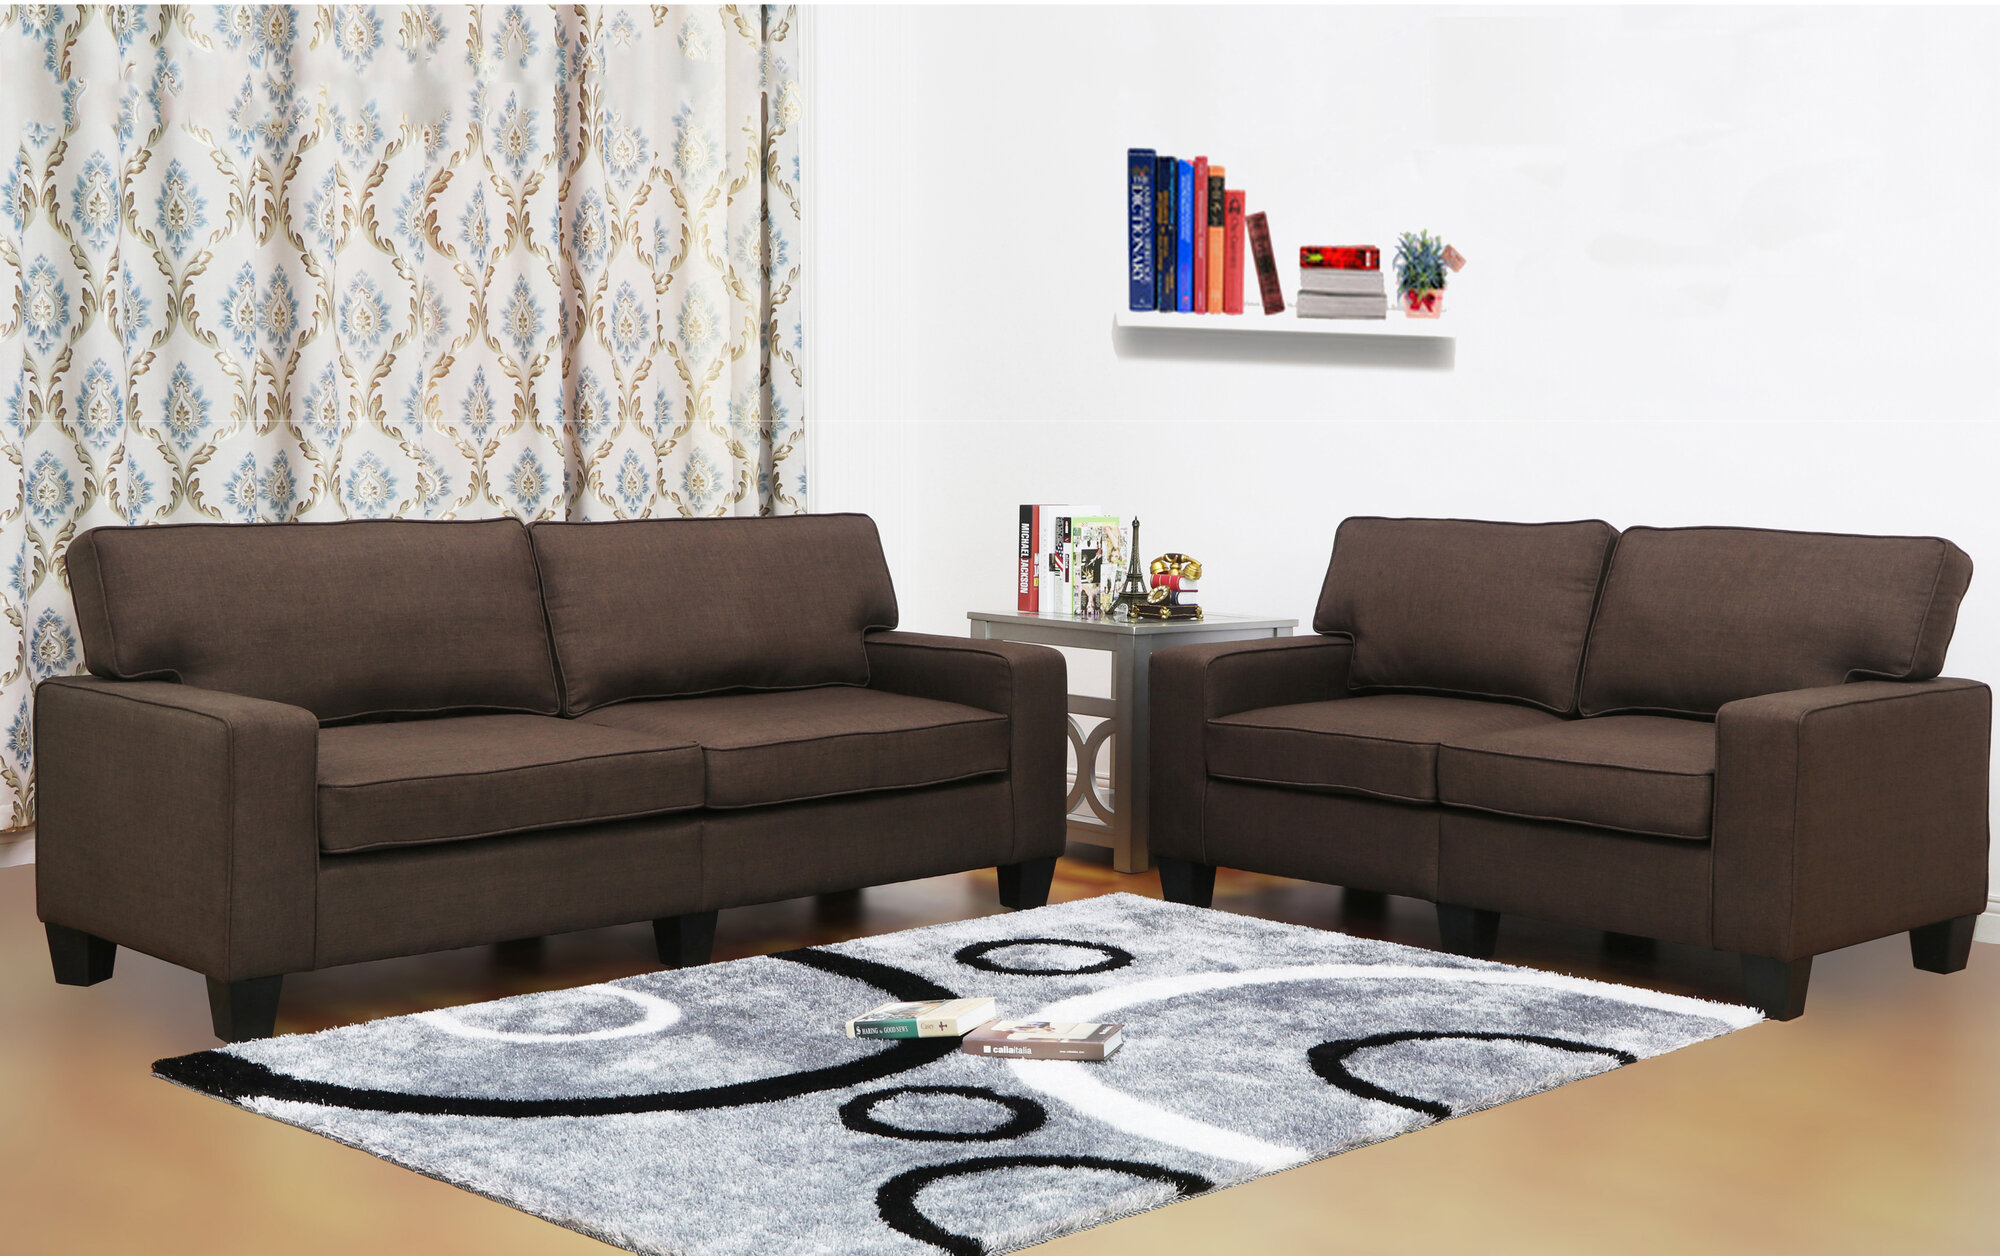 Living in style jordan linen 2 piece modern living room for Jordan linen modern living room sofa